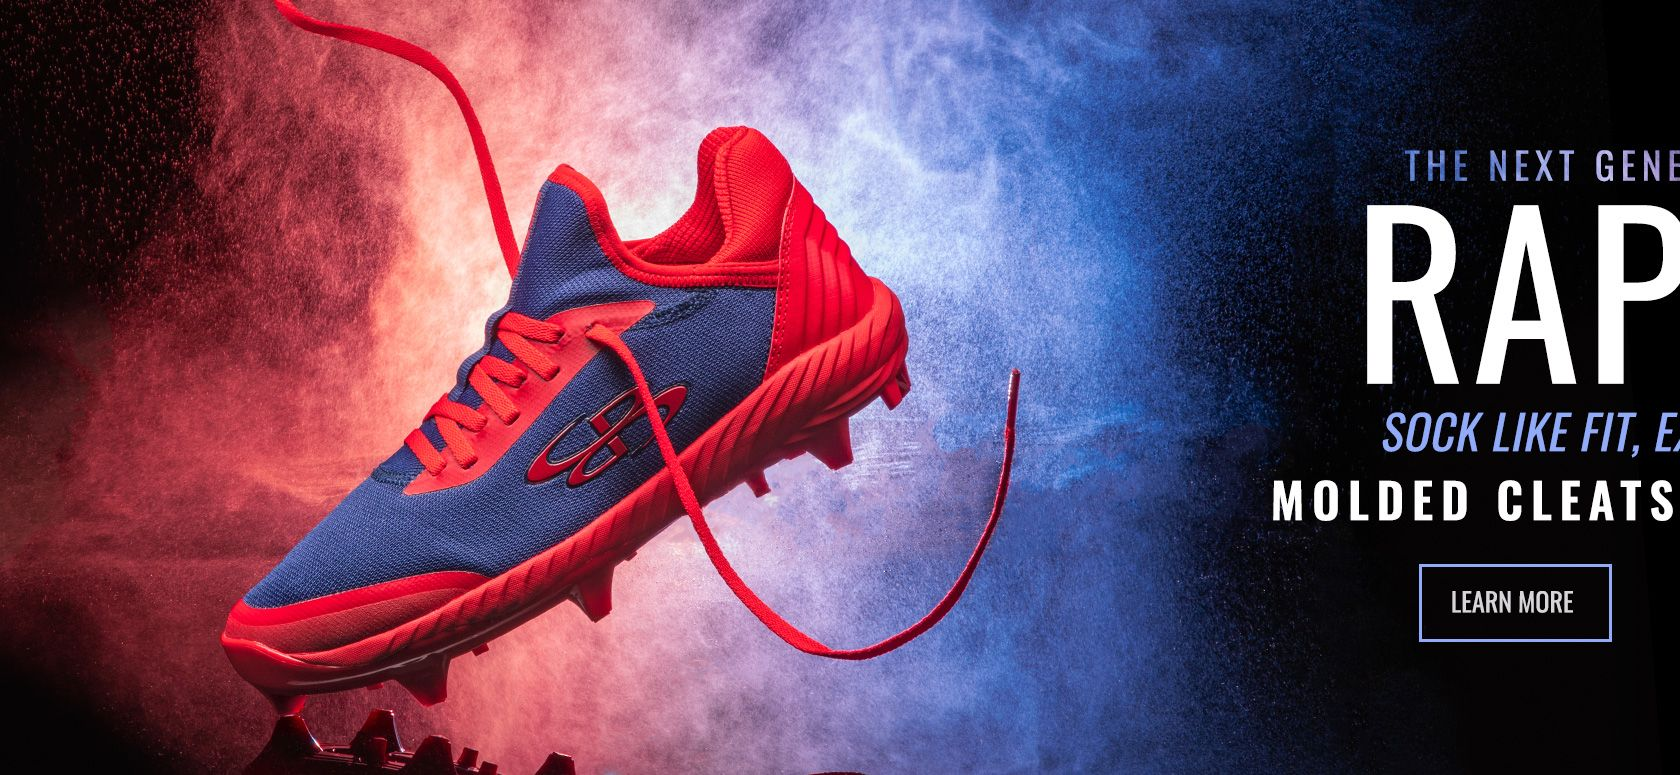 Raptor - Learn More - Molded Cleats Now Available